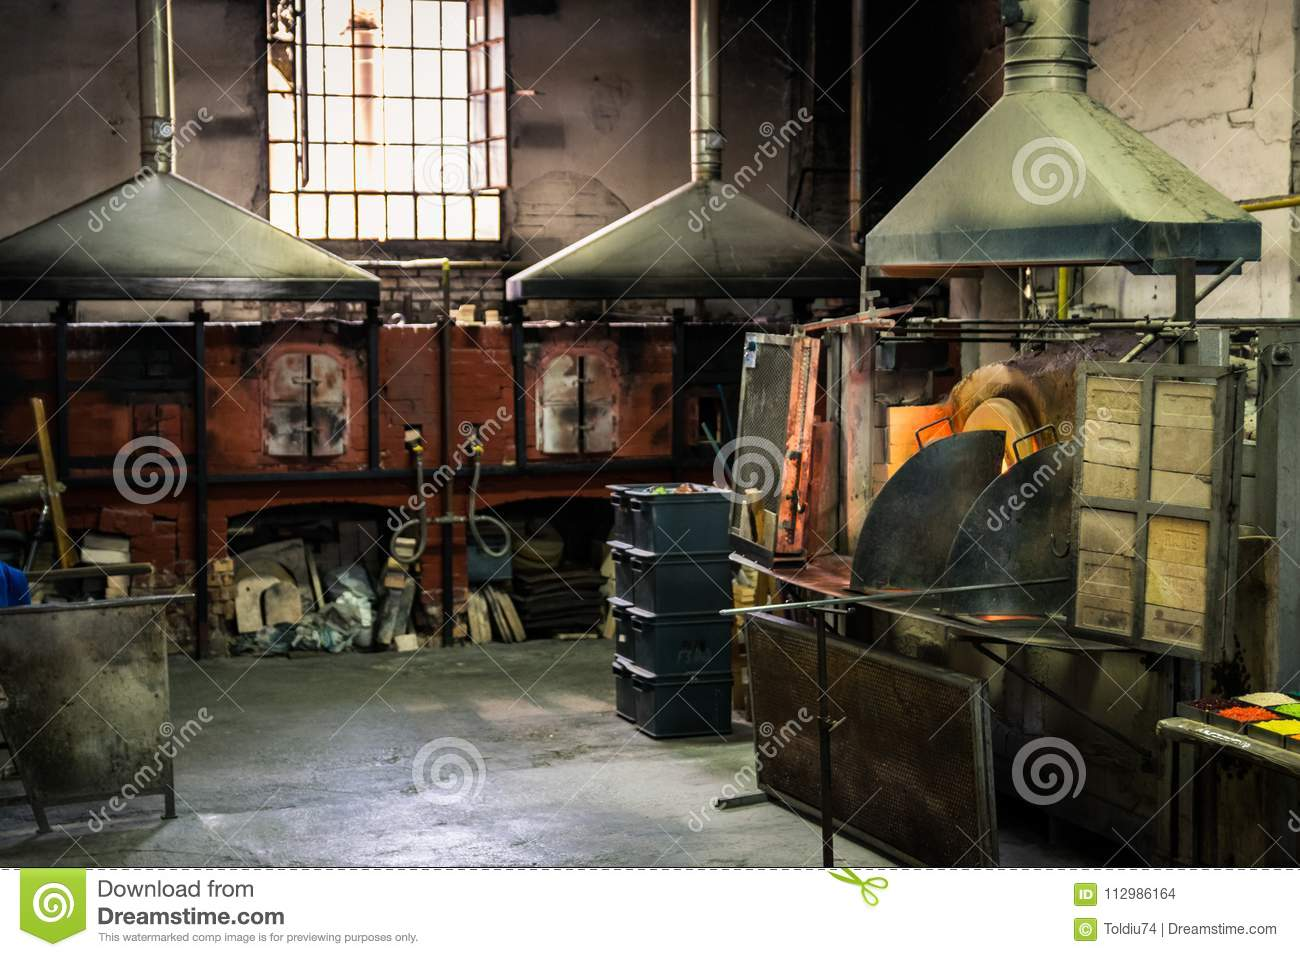 Interior of an artistic glassworks in Murano, Venice. Ancient furnace for blown glass processing.